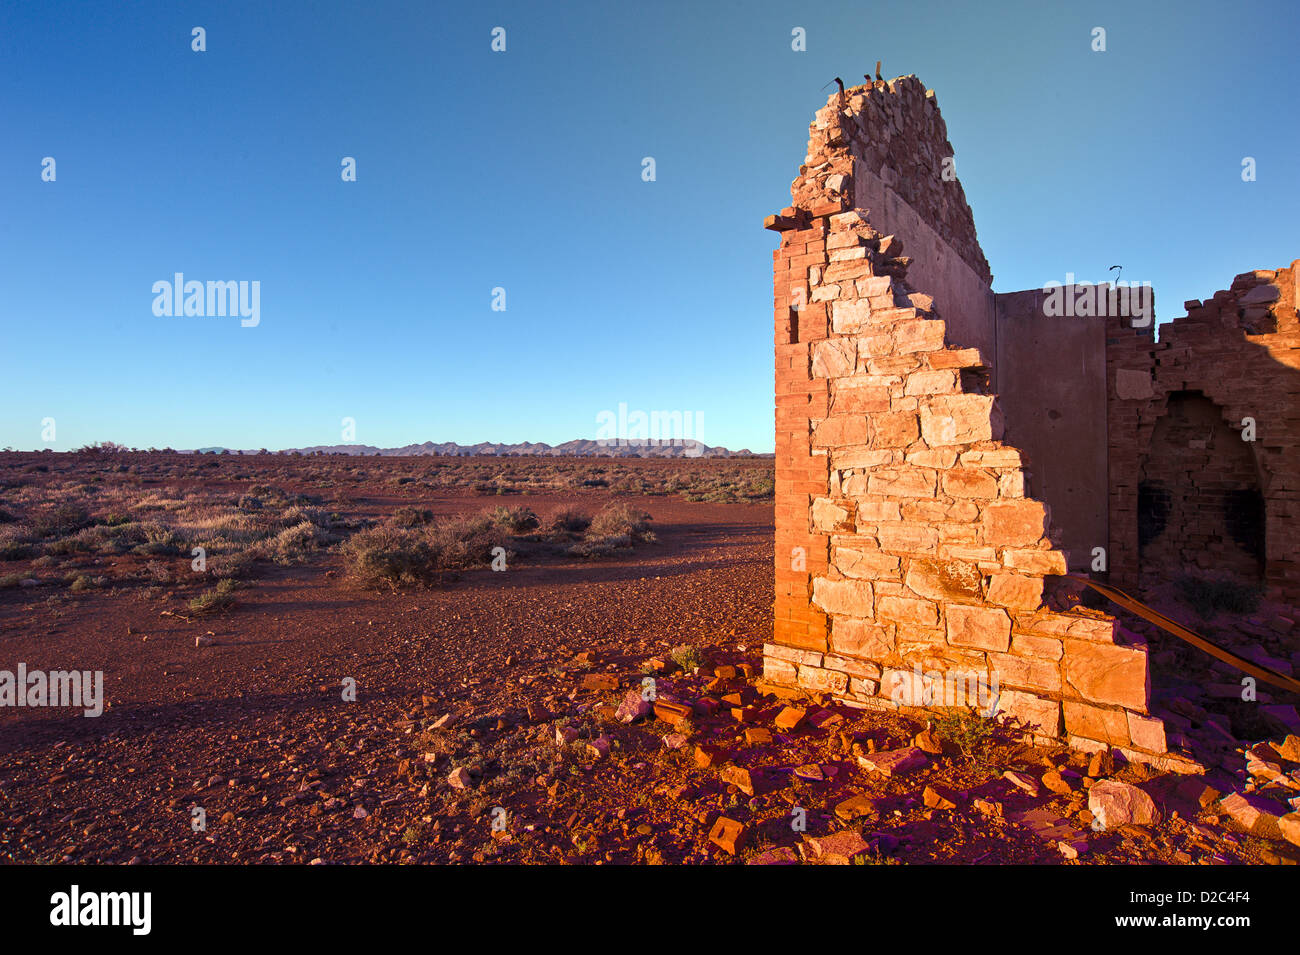 Outback Ruins in Australia - Stock Image